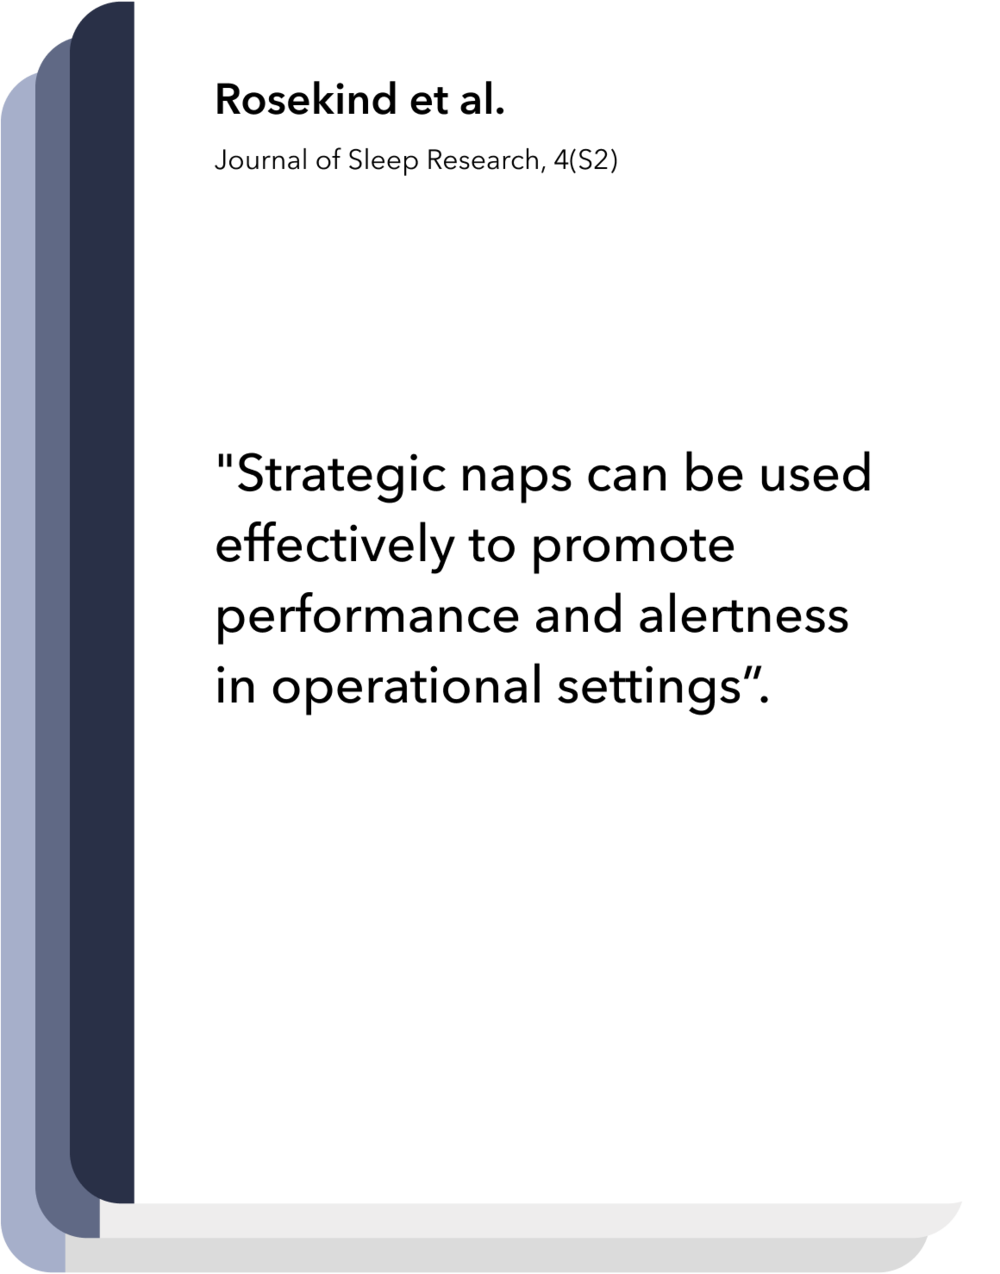 Timeshifter is based on the latest research in sleep and circadian neuroscience: Sleep